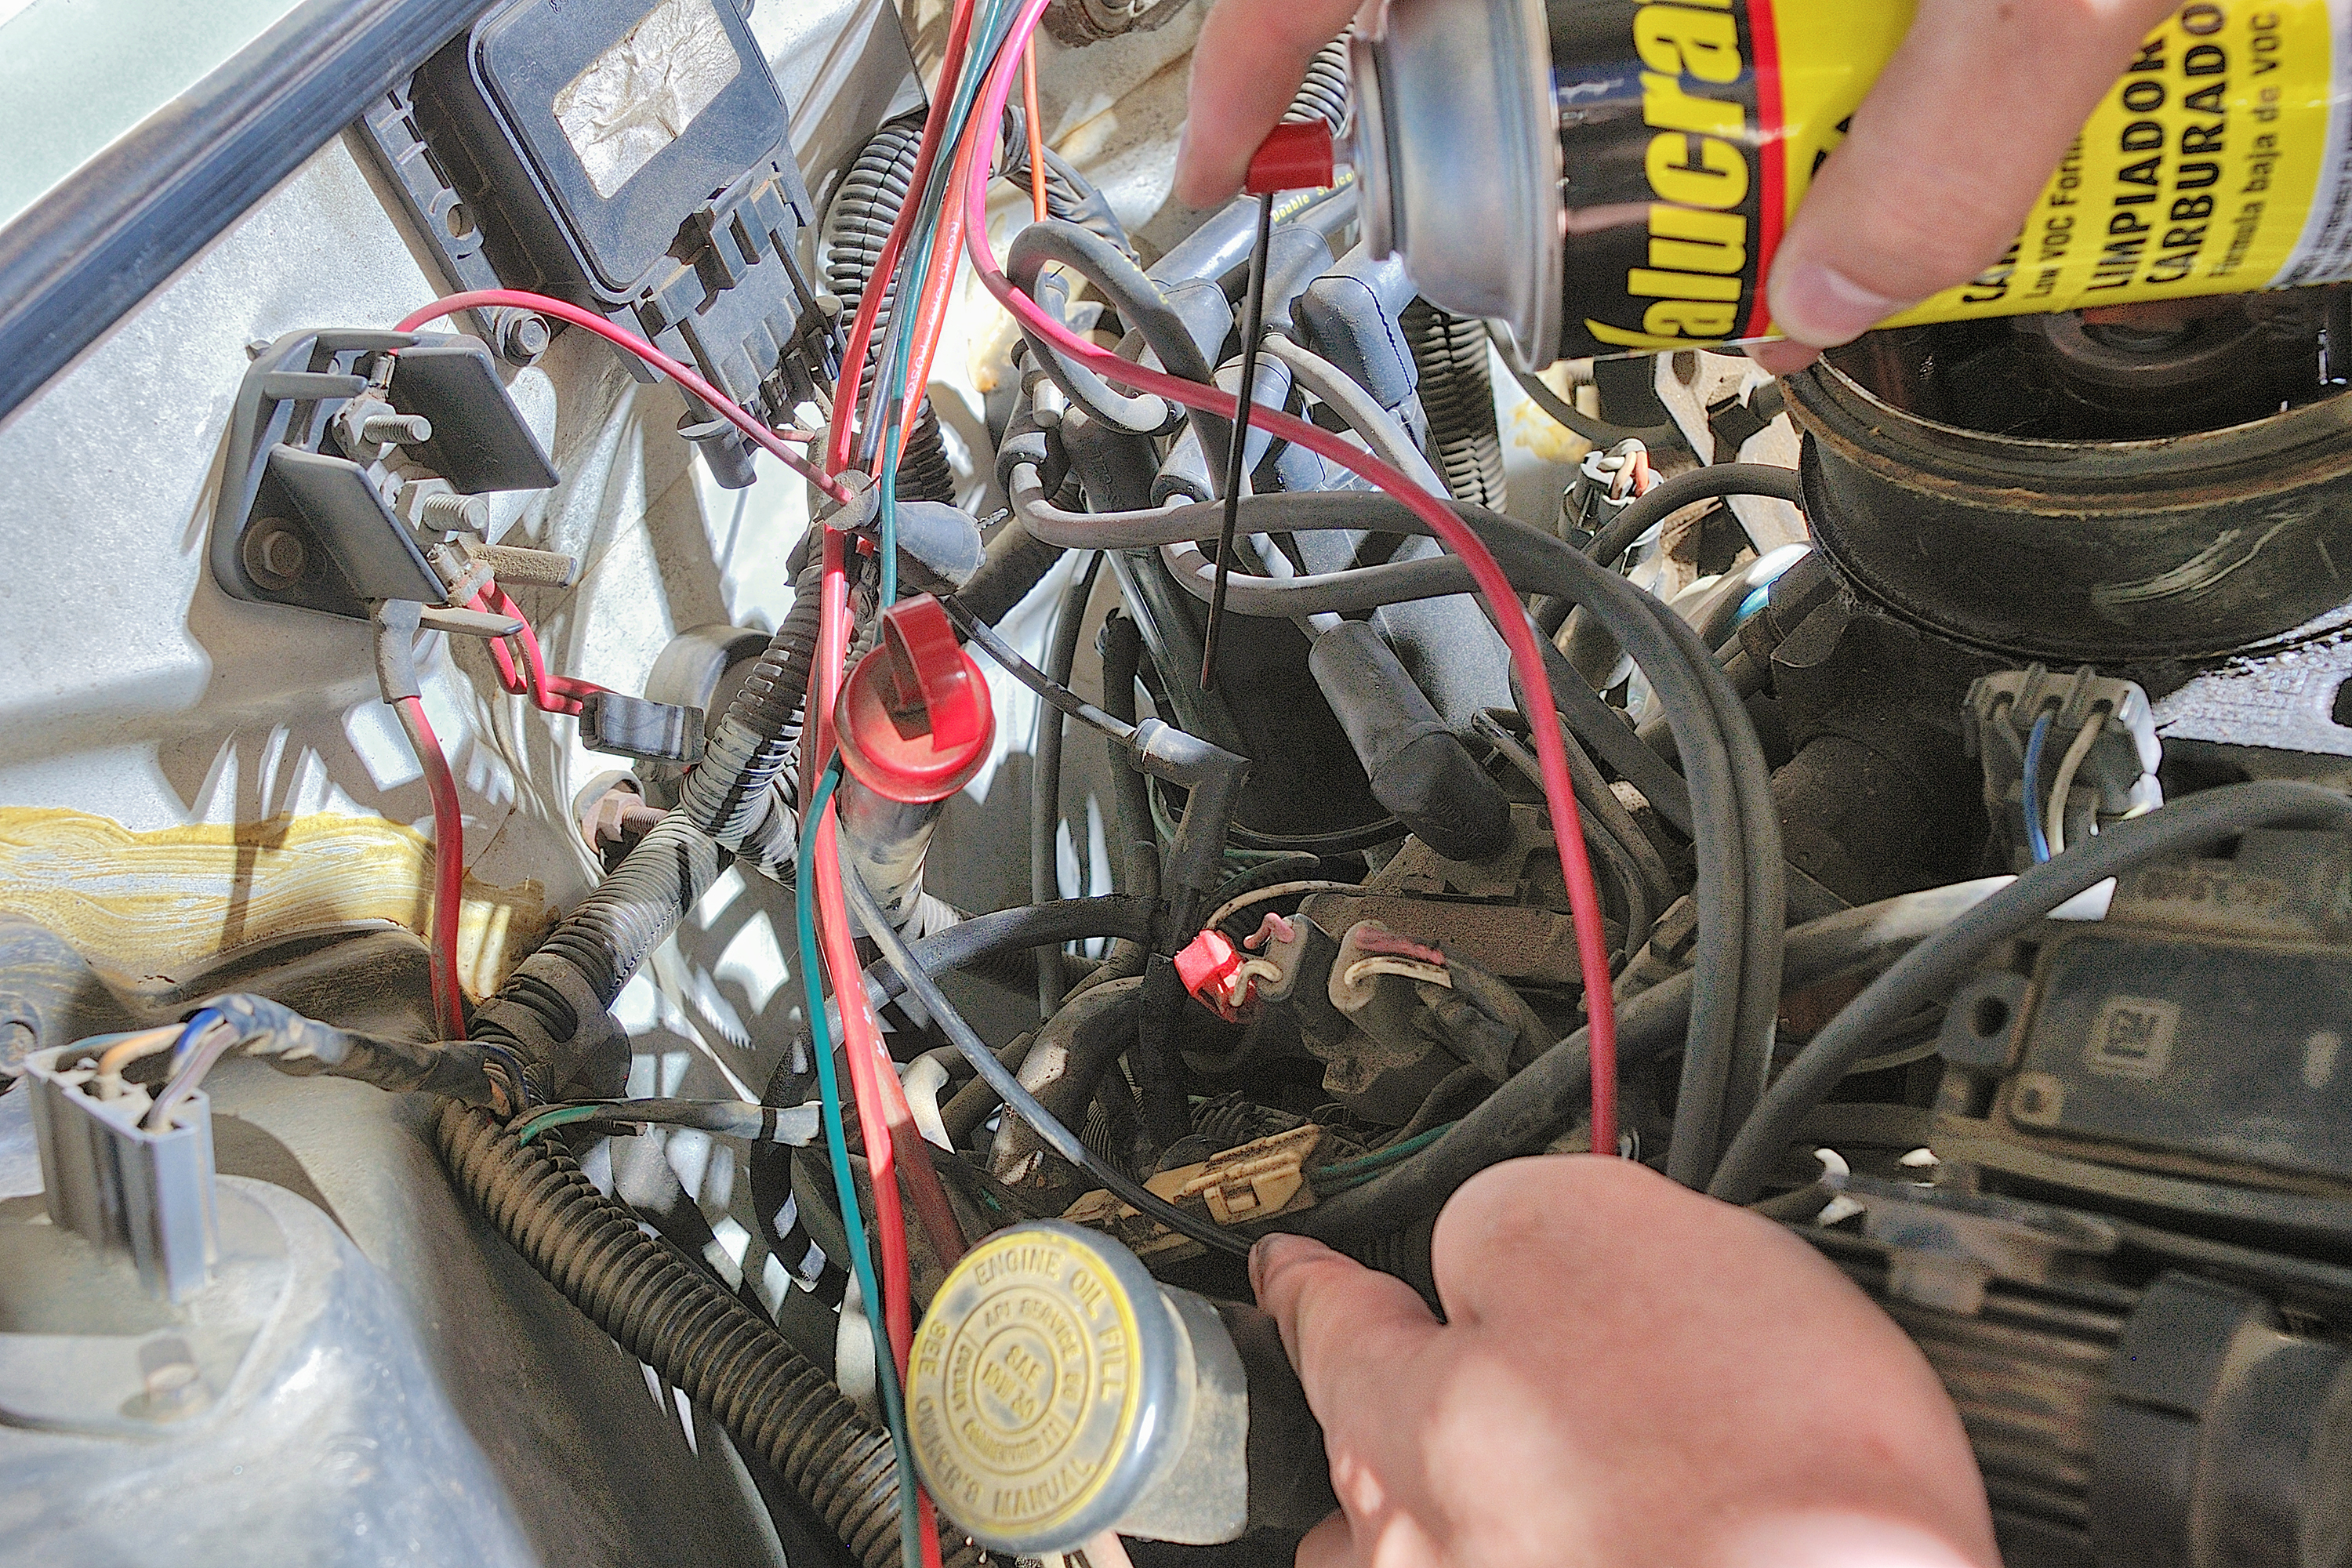 spray the carburetor cleaner lightly all along the vacuum lines if you  cannot pinpoint the hissing sound  do not oversaturate the lines with the  carburetor